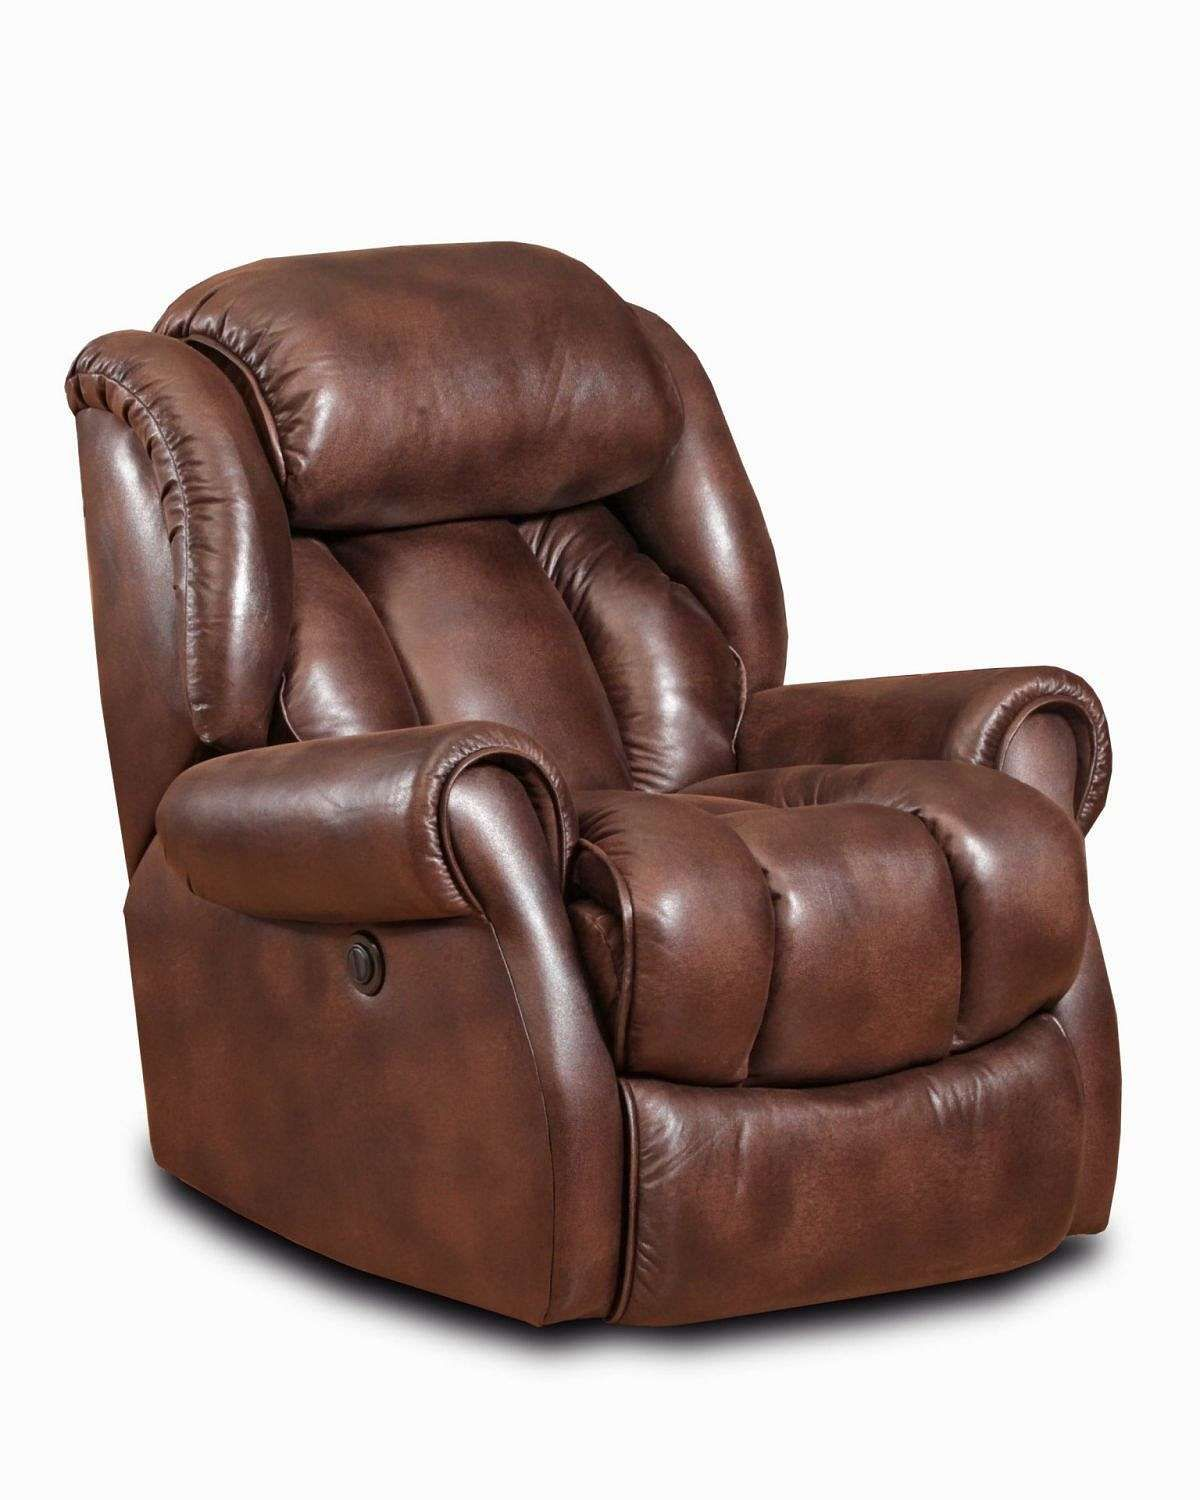 Power recline ffo home power recline ffo home power recliners living room furniture